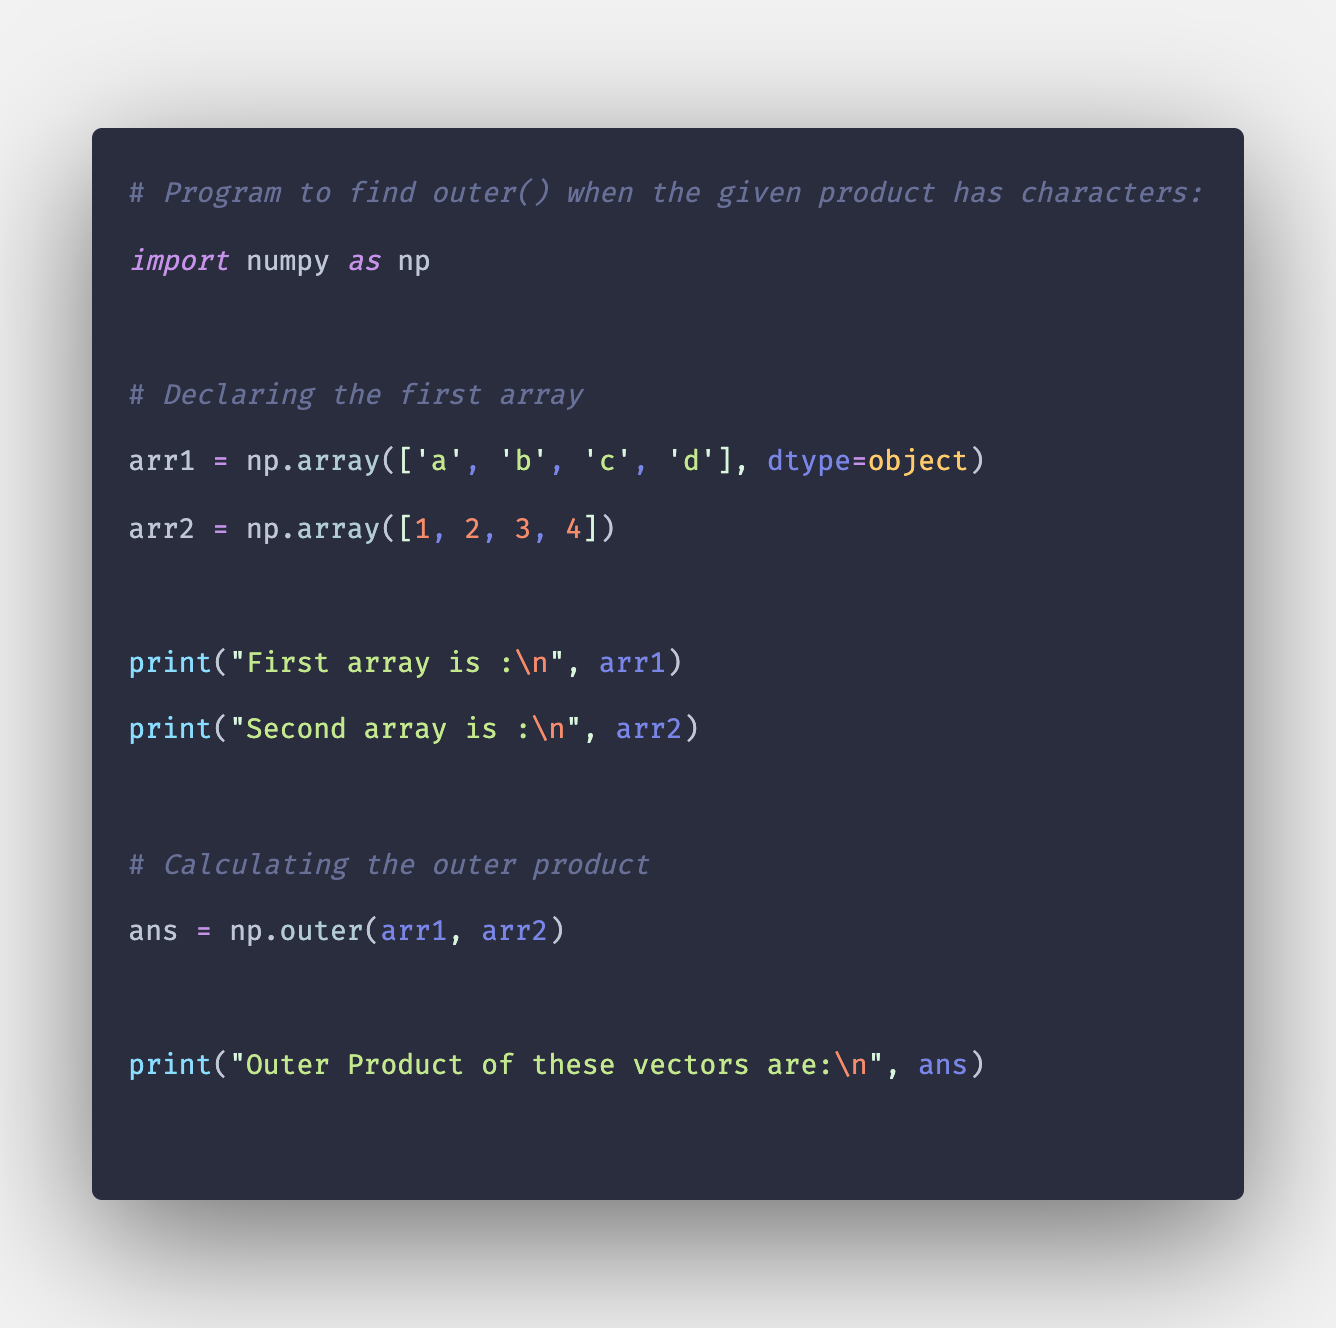 Numpy outer: How to Calculate Product of Vectors in Python